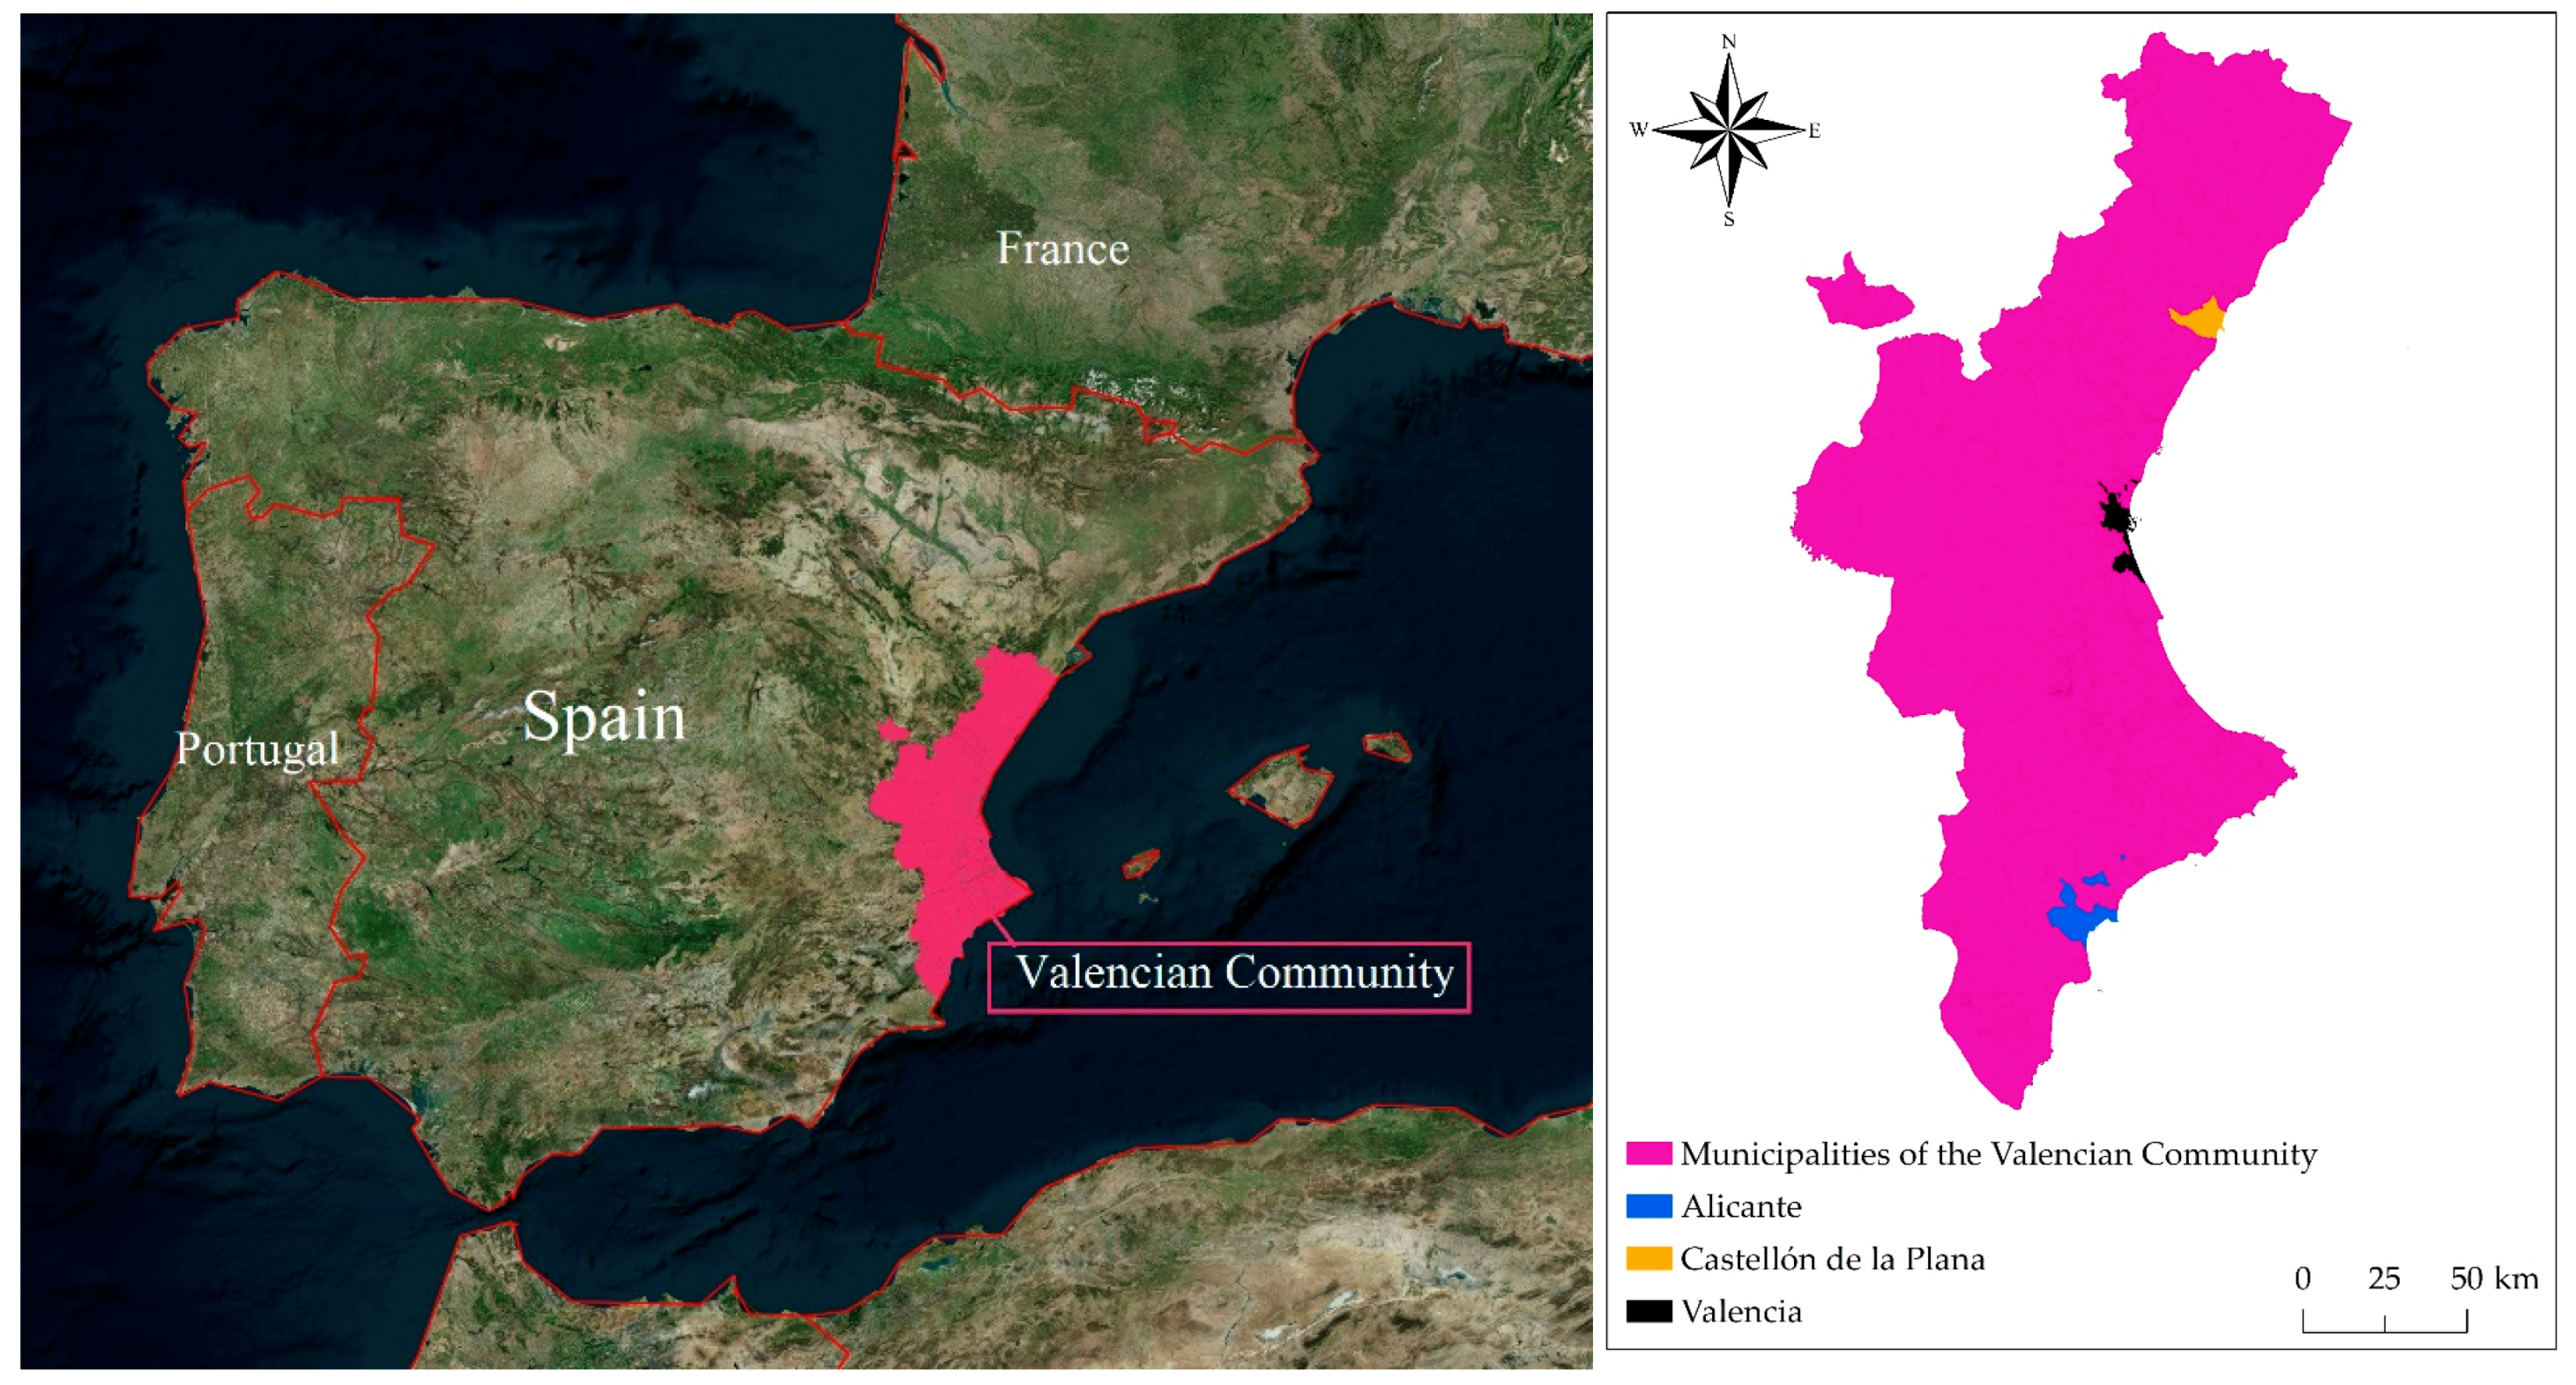 Actor Porno Alicante land | free full-text | industrial sprawl and residential